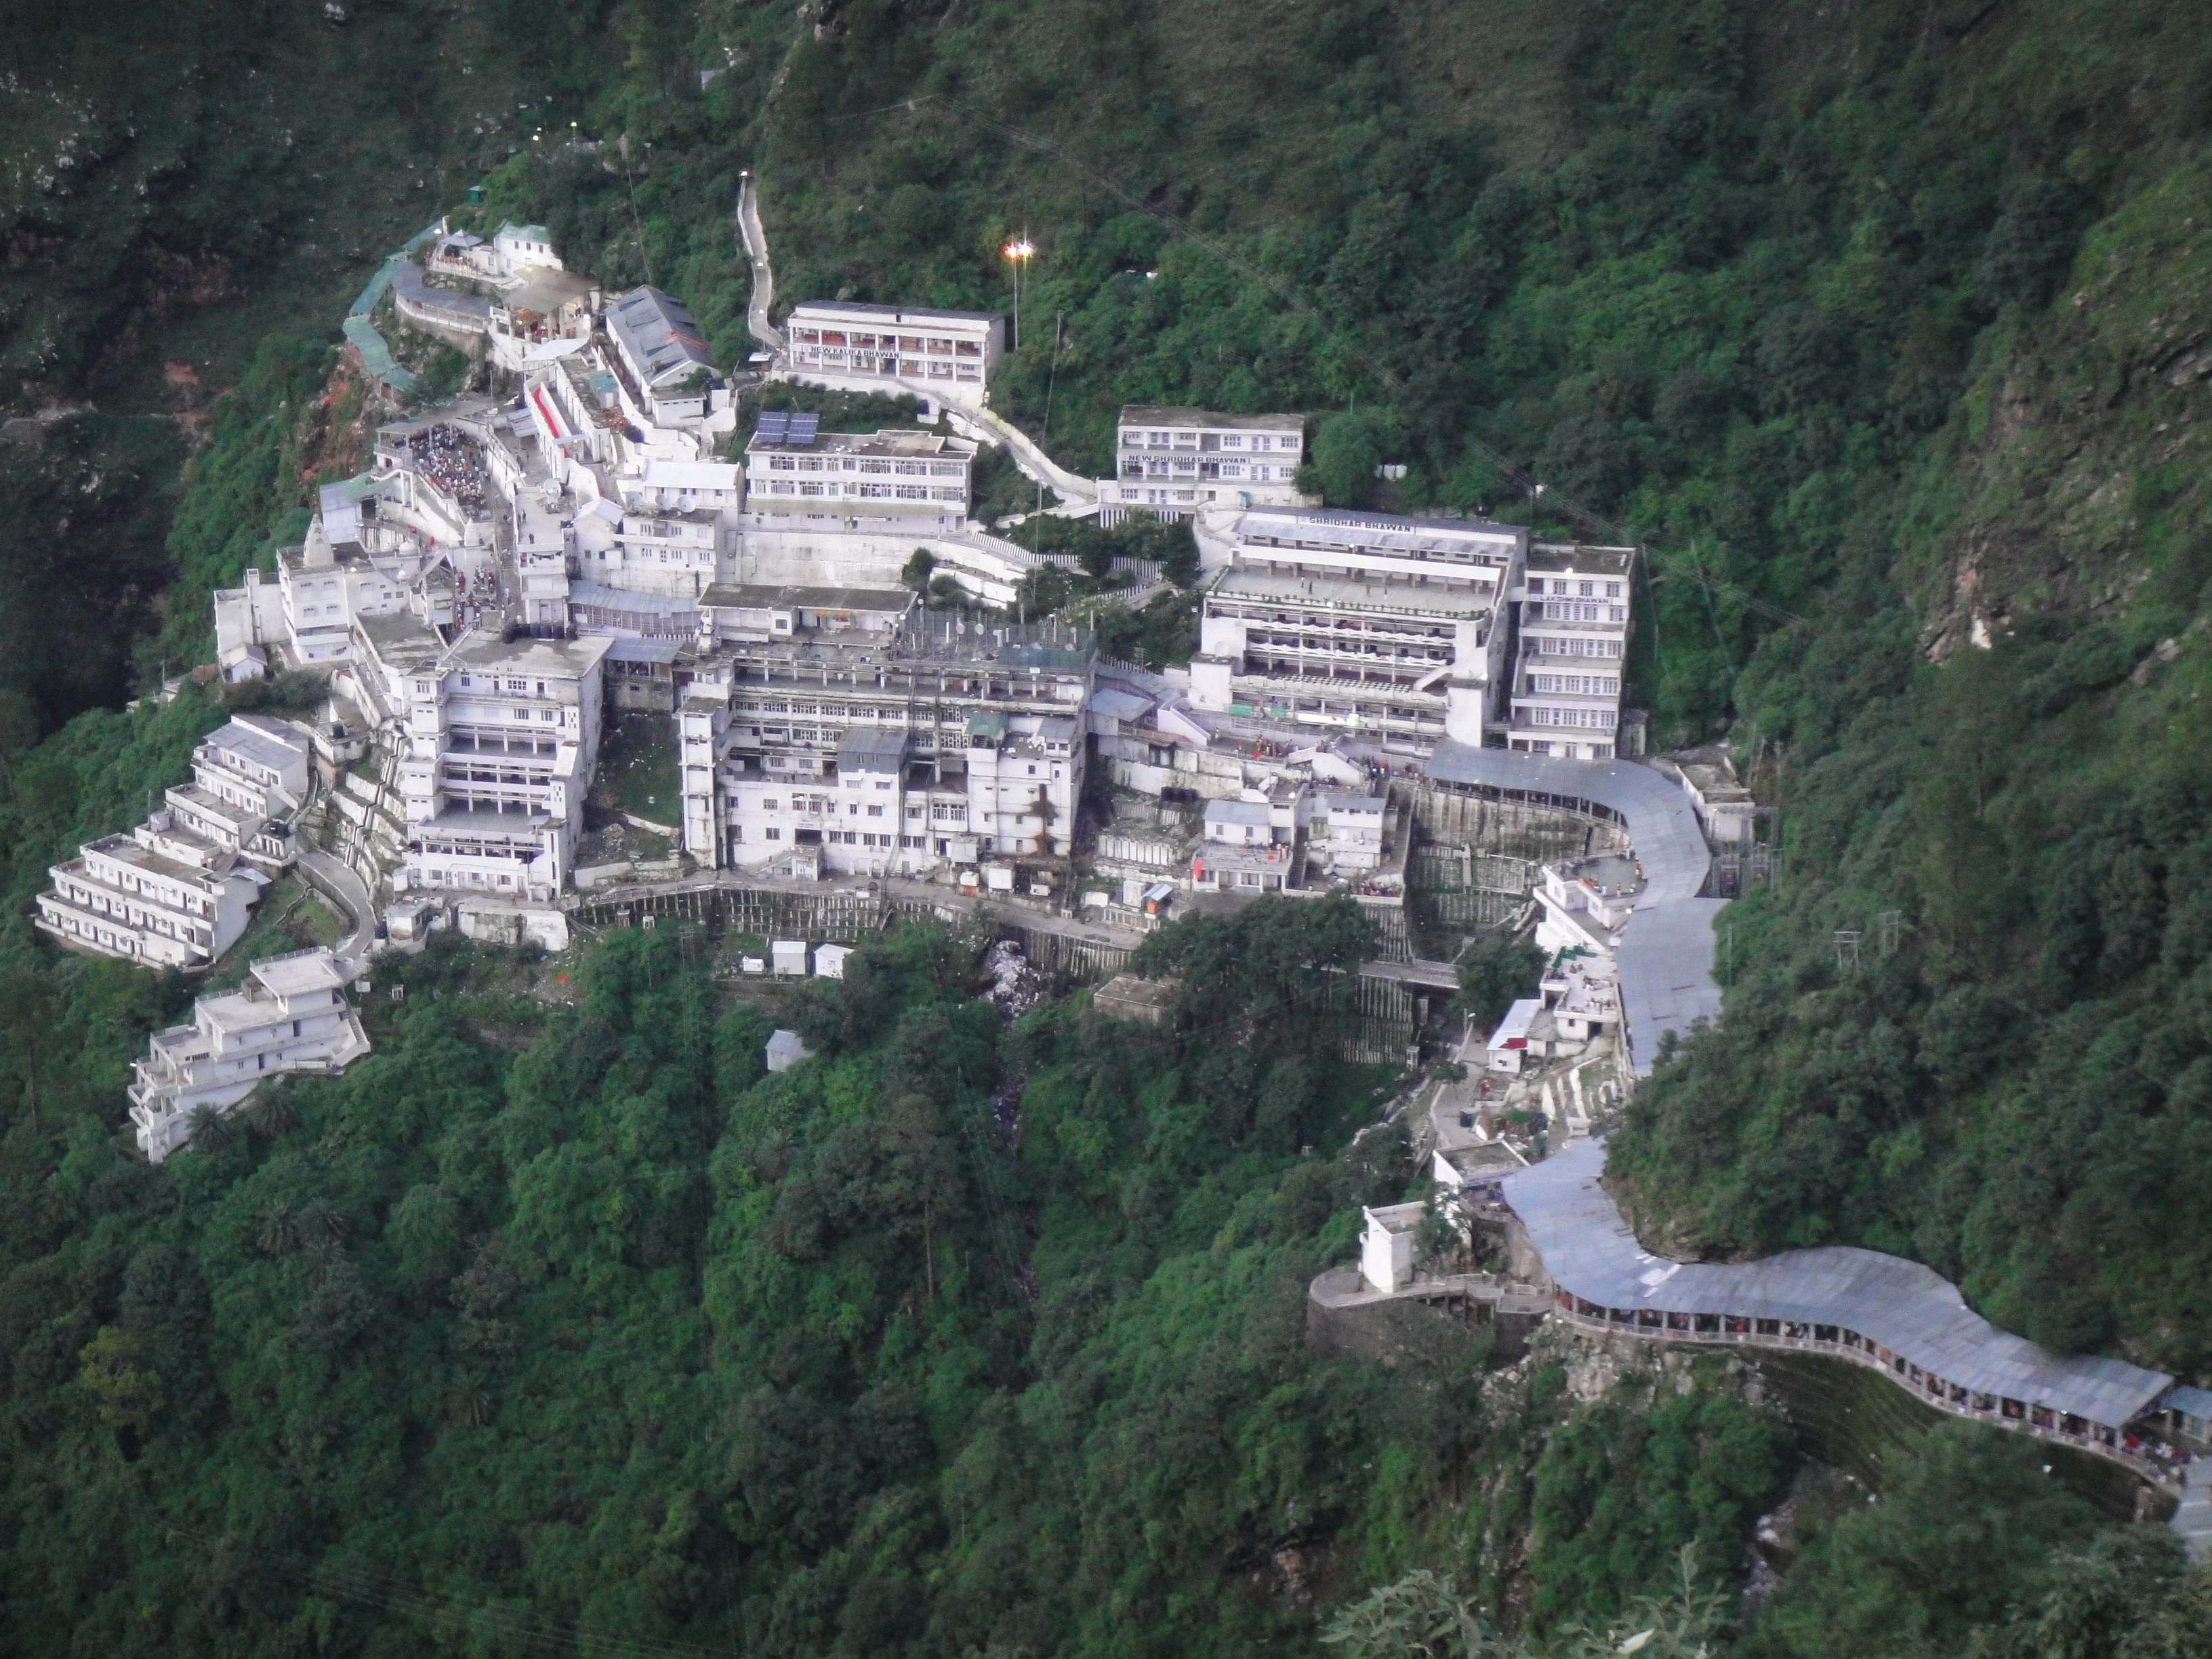 helicopter services to vaishno devi with Top 7 Things To Do In Vaishno Devi on 529355 moreover Bhawan further Mata Vaishno Devi Yatra 54697651 furthermore carcoachrentalindia further Shri Ek Dant Travel Planners 1799.